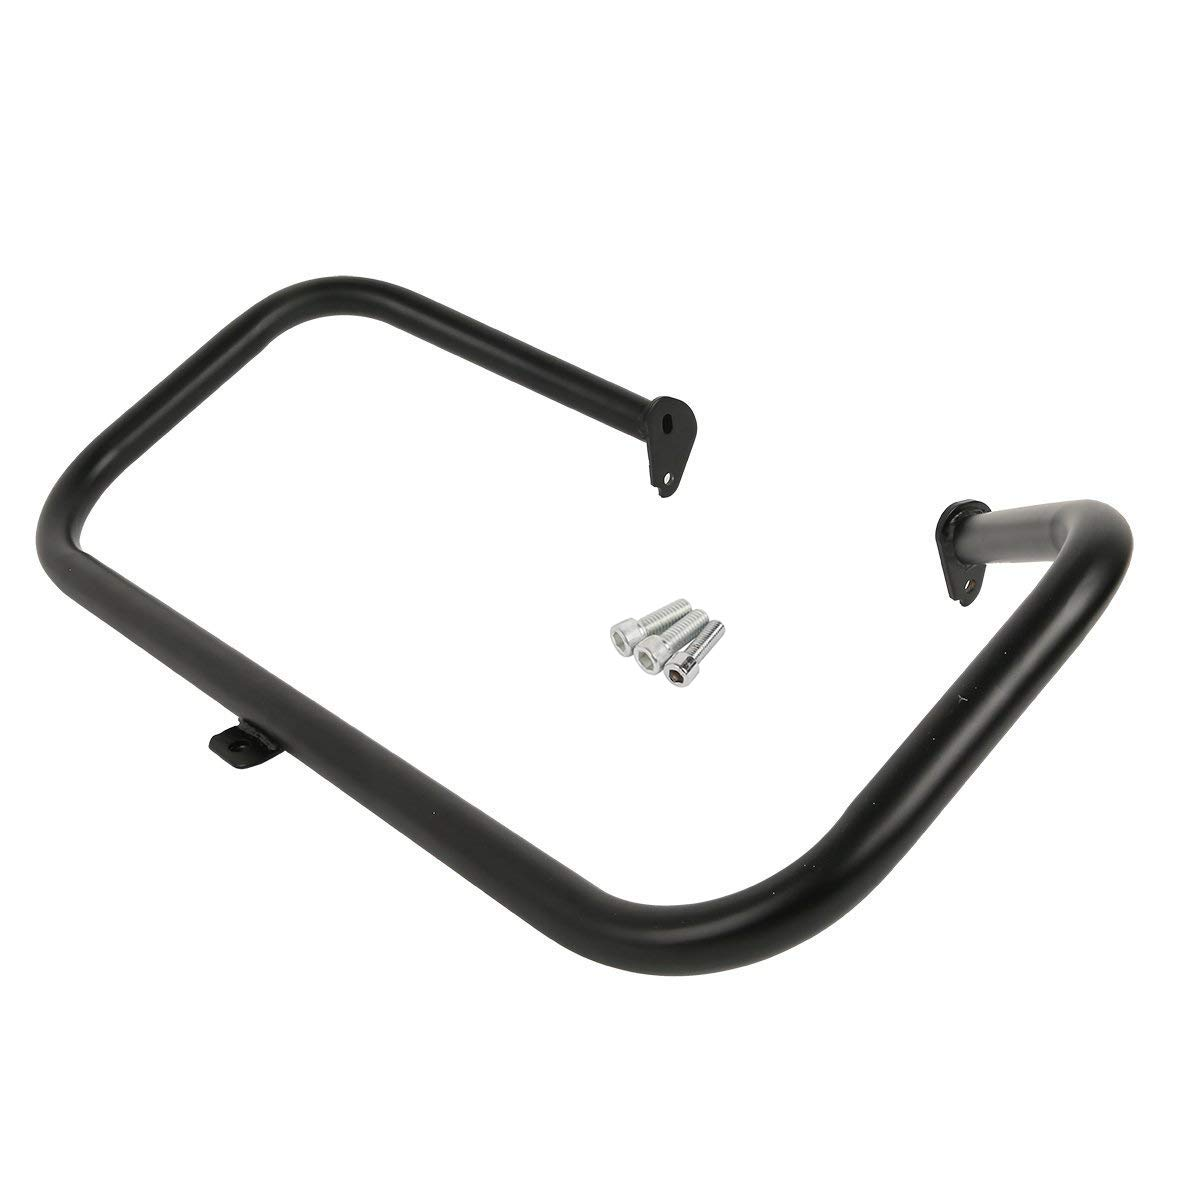 XFMT Black Motorcycle Engine Saddlebag Highway Guard Crash Bar Compatible with Harley Touring Electra Glide FLHT HD Road King FLHT 1997-2008